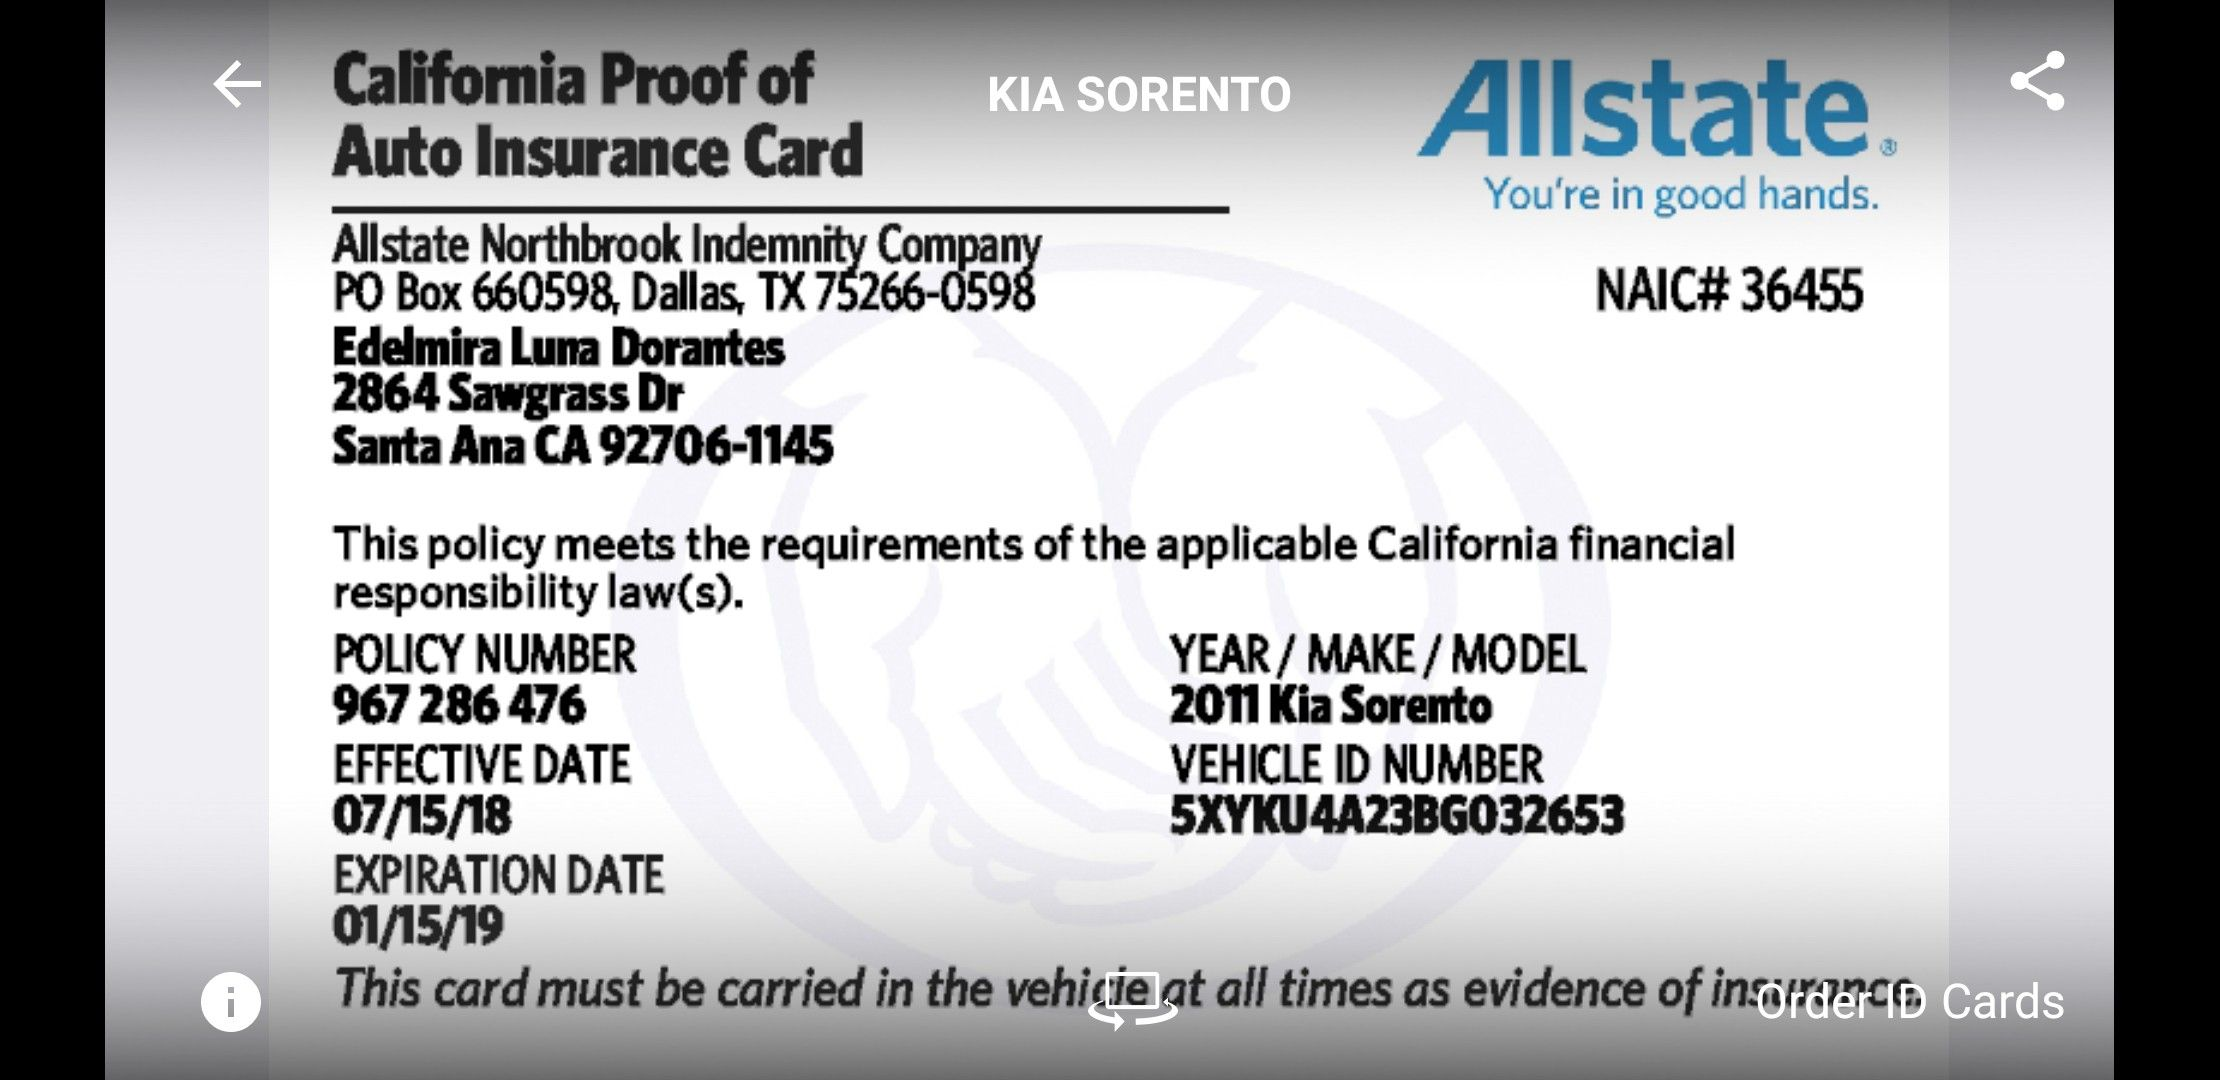 Car Insurance Card Car Insurance Kia Sorento Insurance